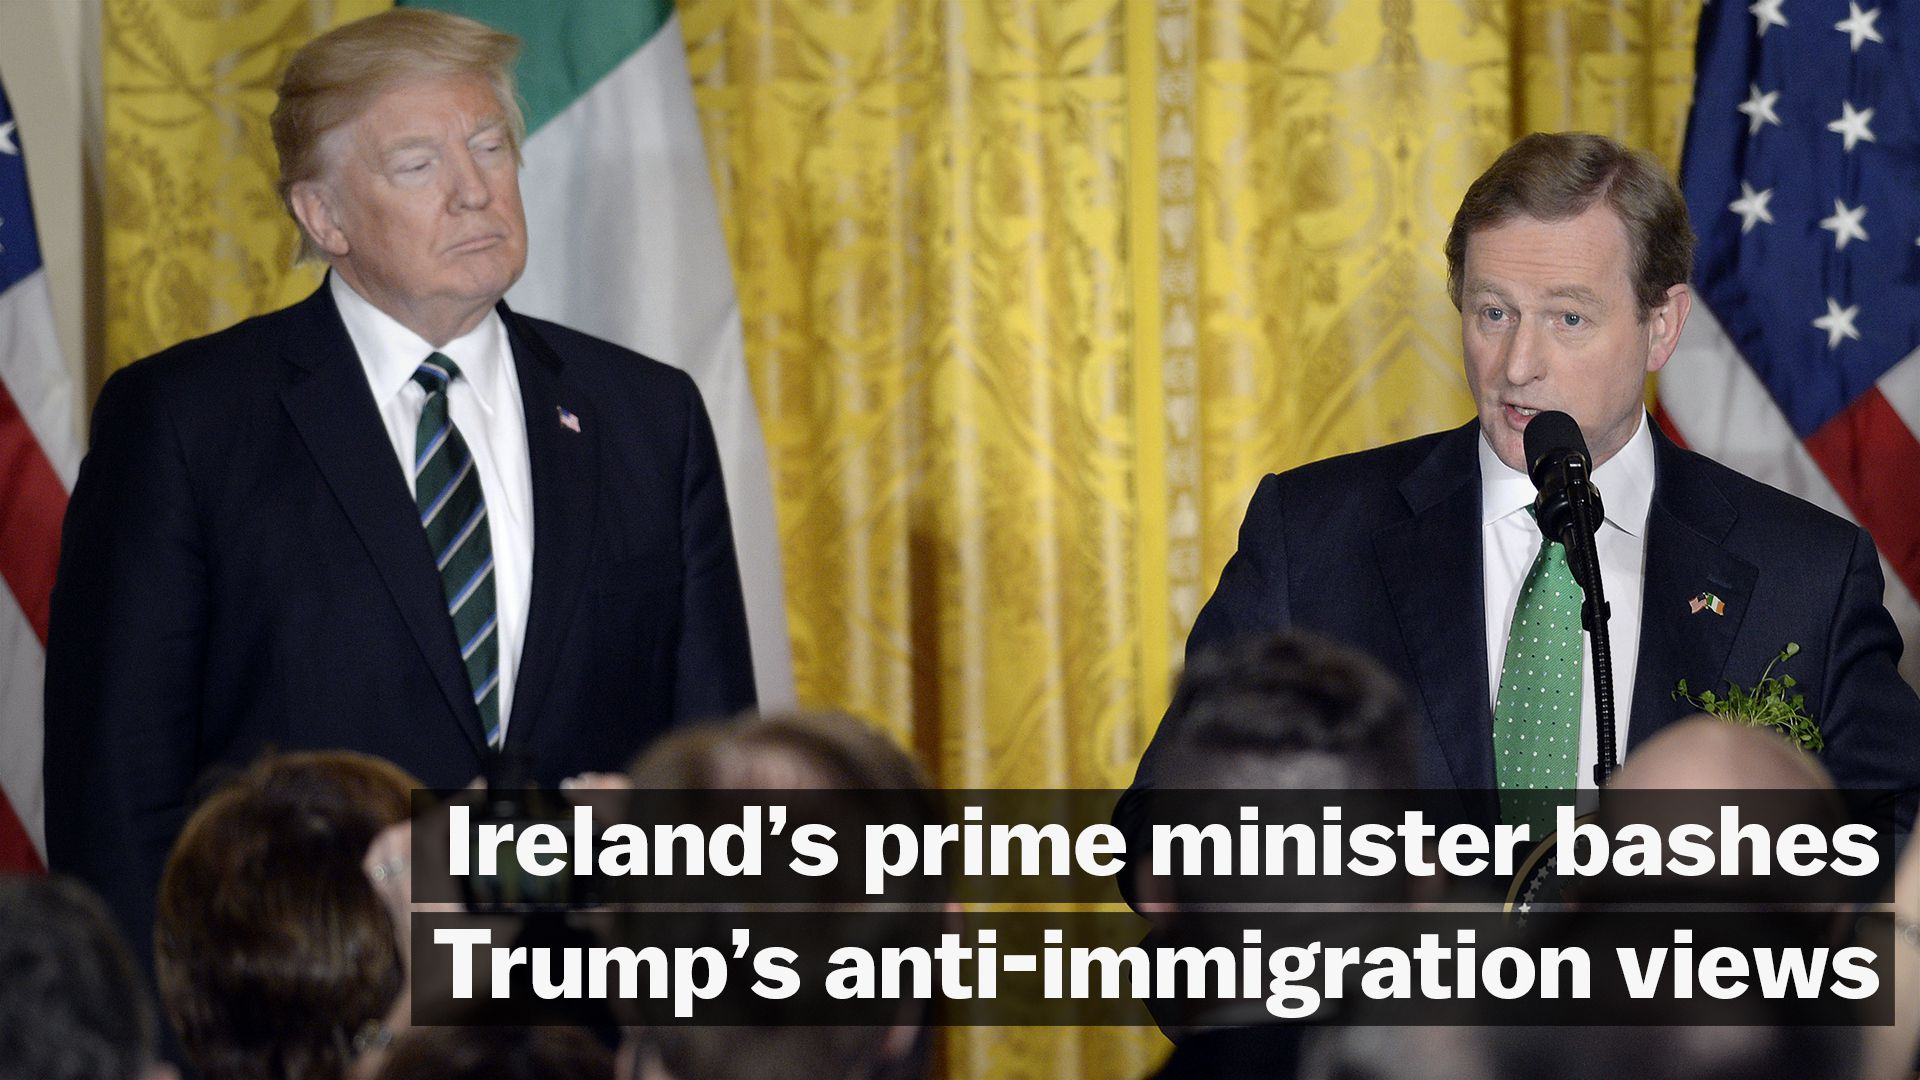 Watch Ireland's prime minister bash Trump's anti-immigration views just feet away from Trump